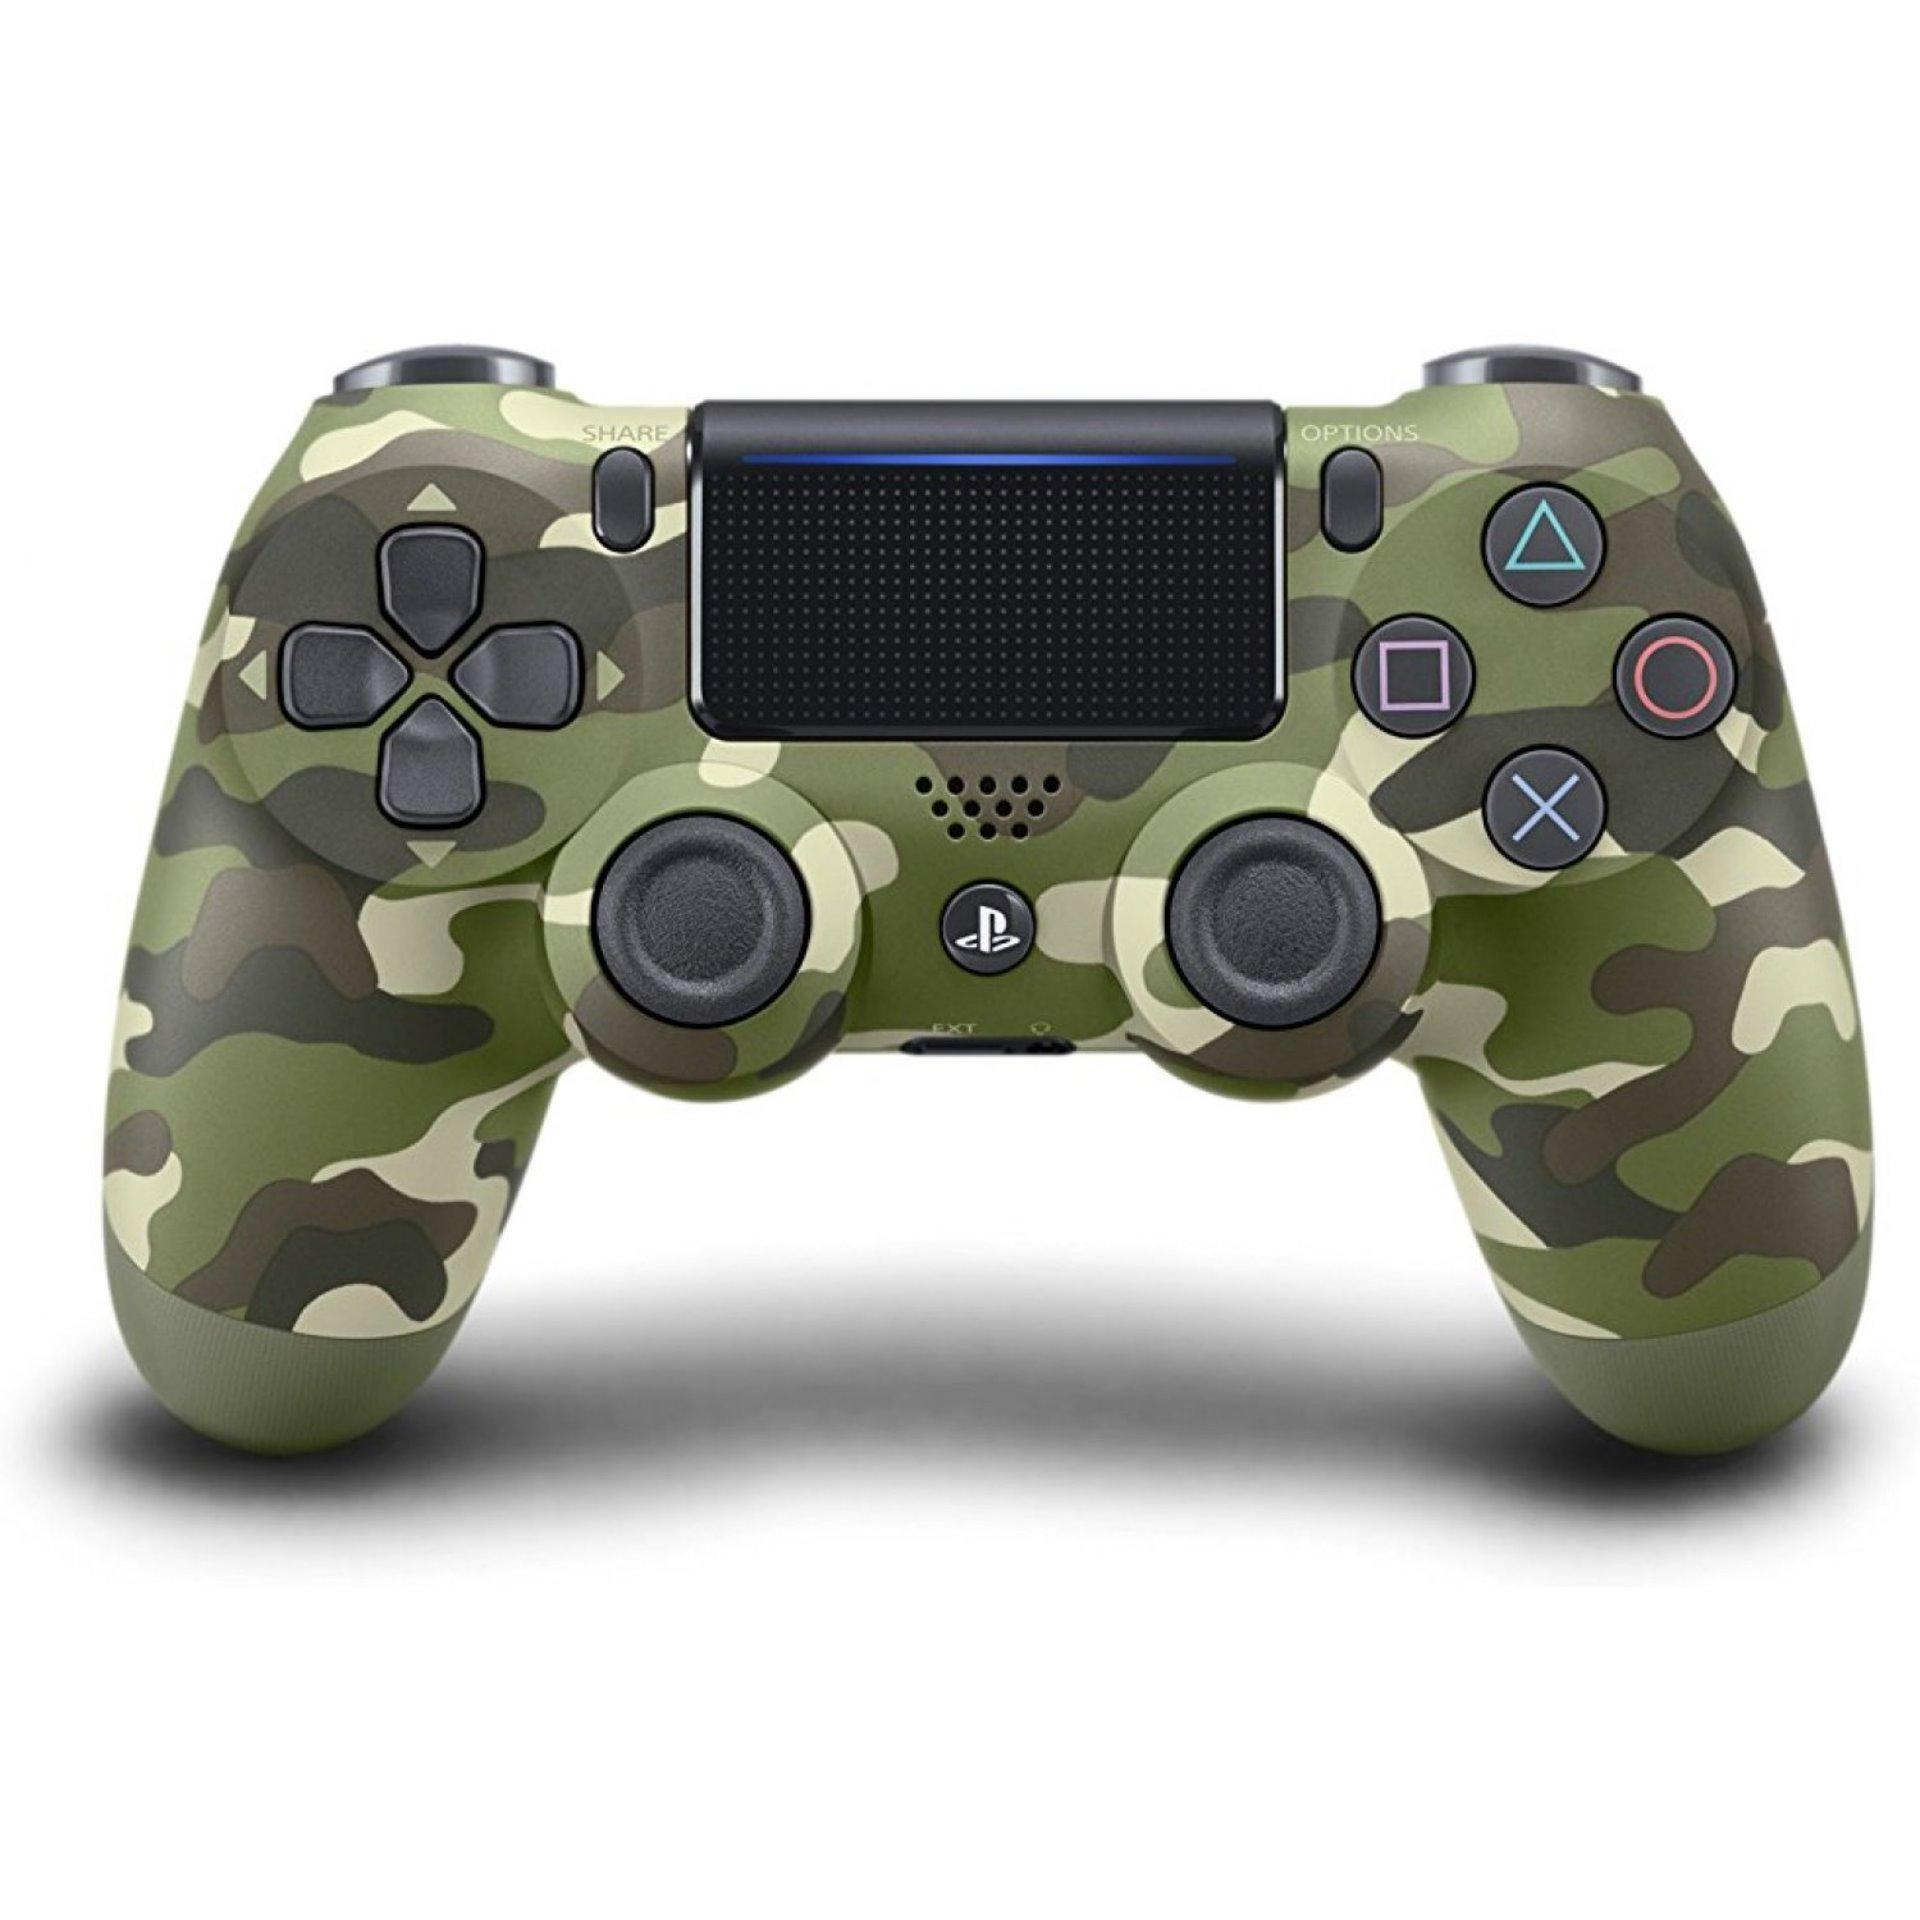 New PS4 Dual Shock 4 Wireless Controller Green Camouflage